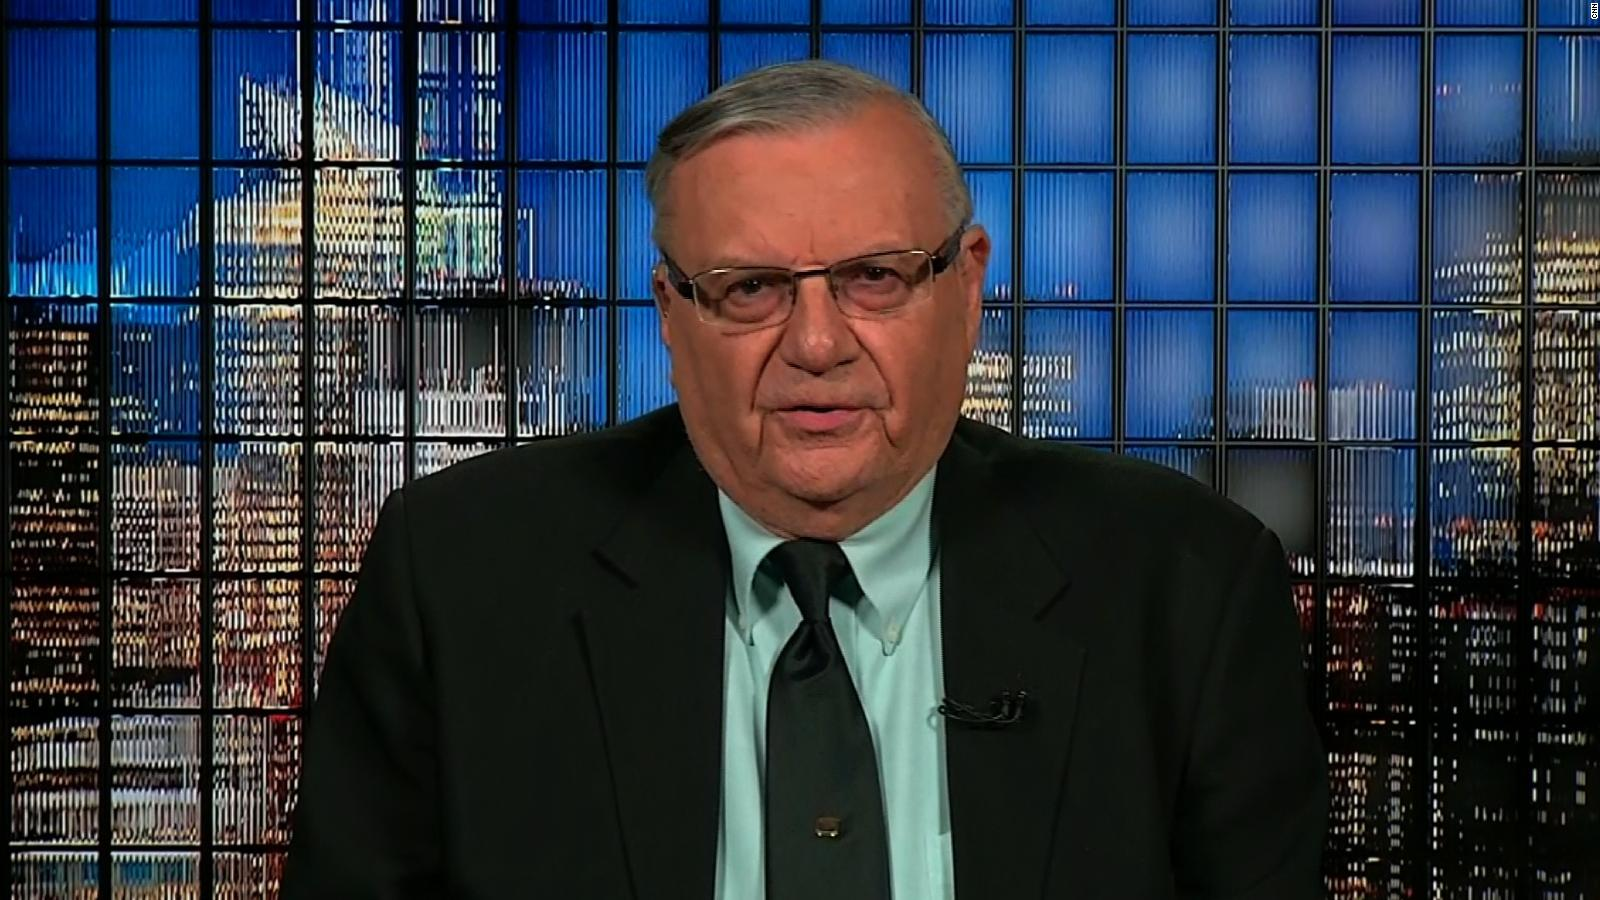 Joe arpaio obamas birth certificate is a phony document joe arpaio obamas birth certificate is a phony document cnnpolitics aiddatafo Images